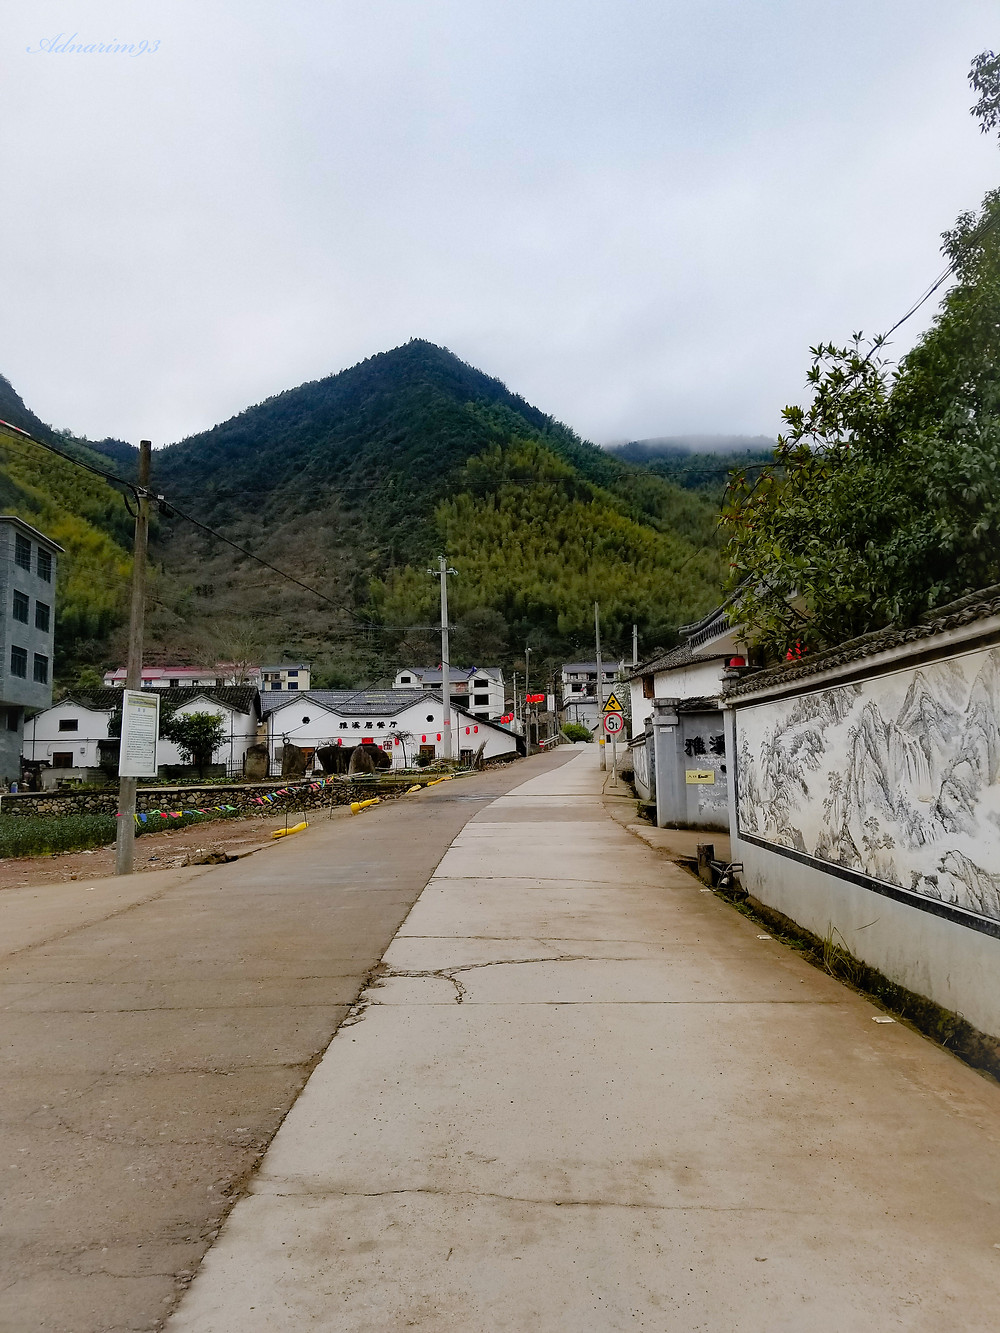 Town area in Wuyi, China